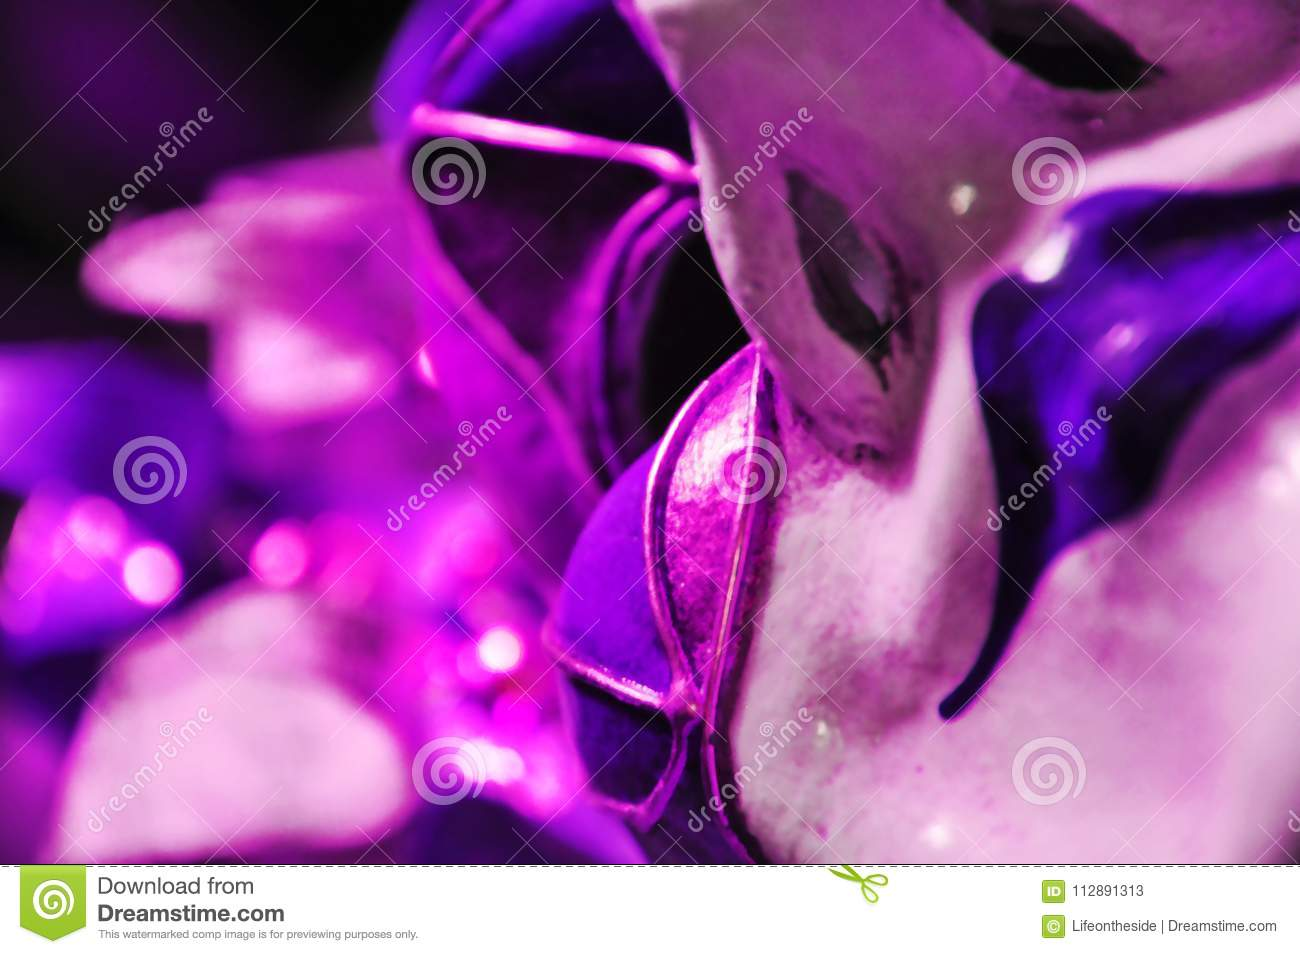 Abstract background ultra violet Venetian masquerade mask, self image concept